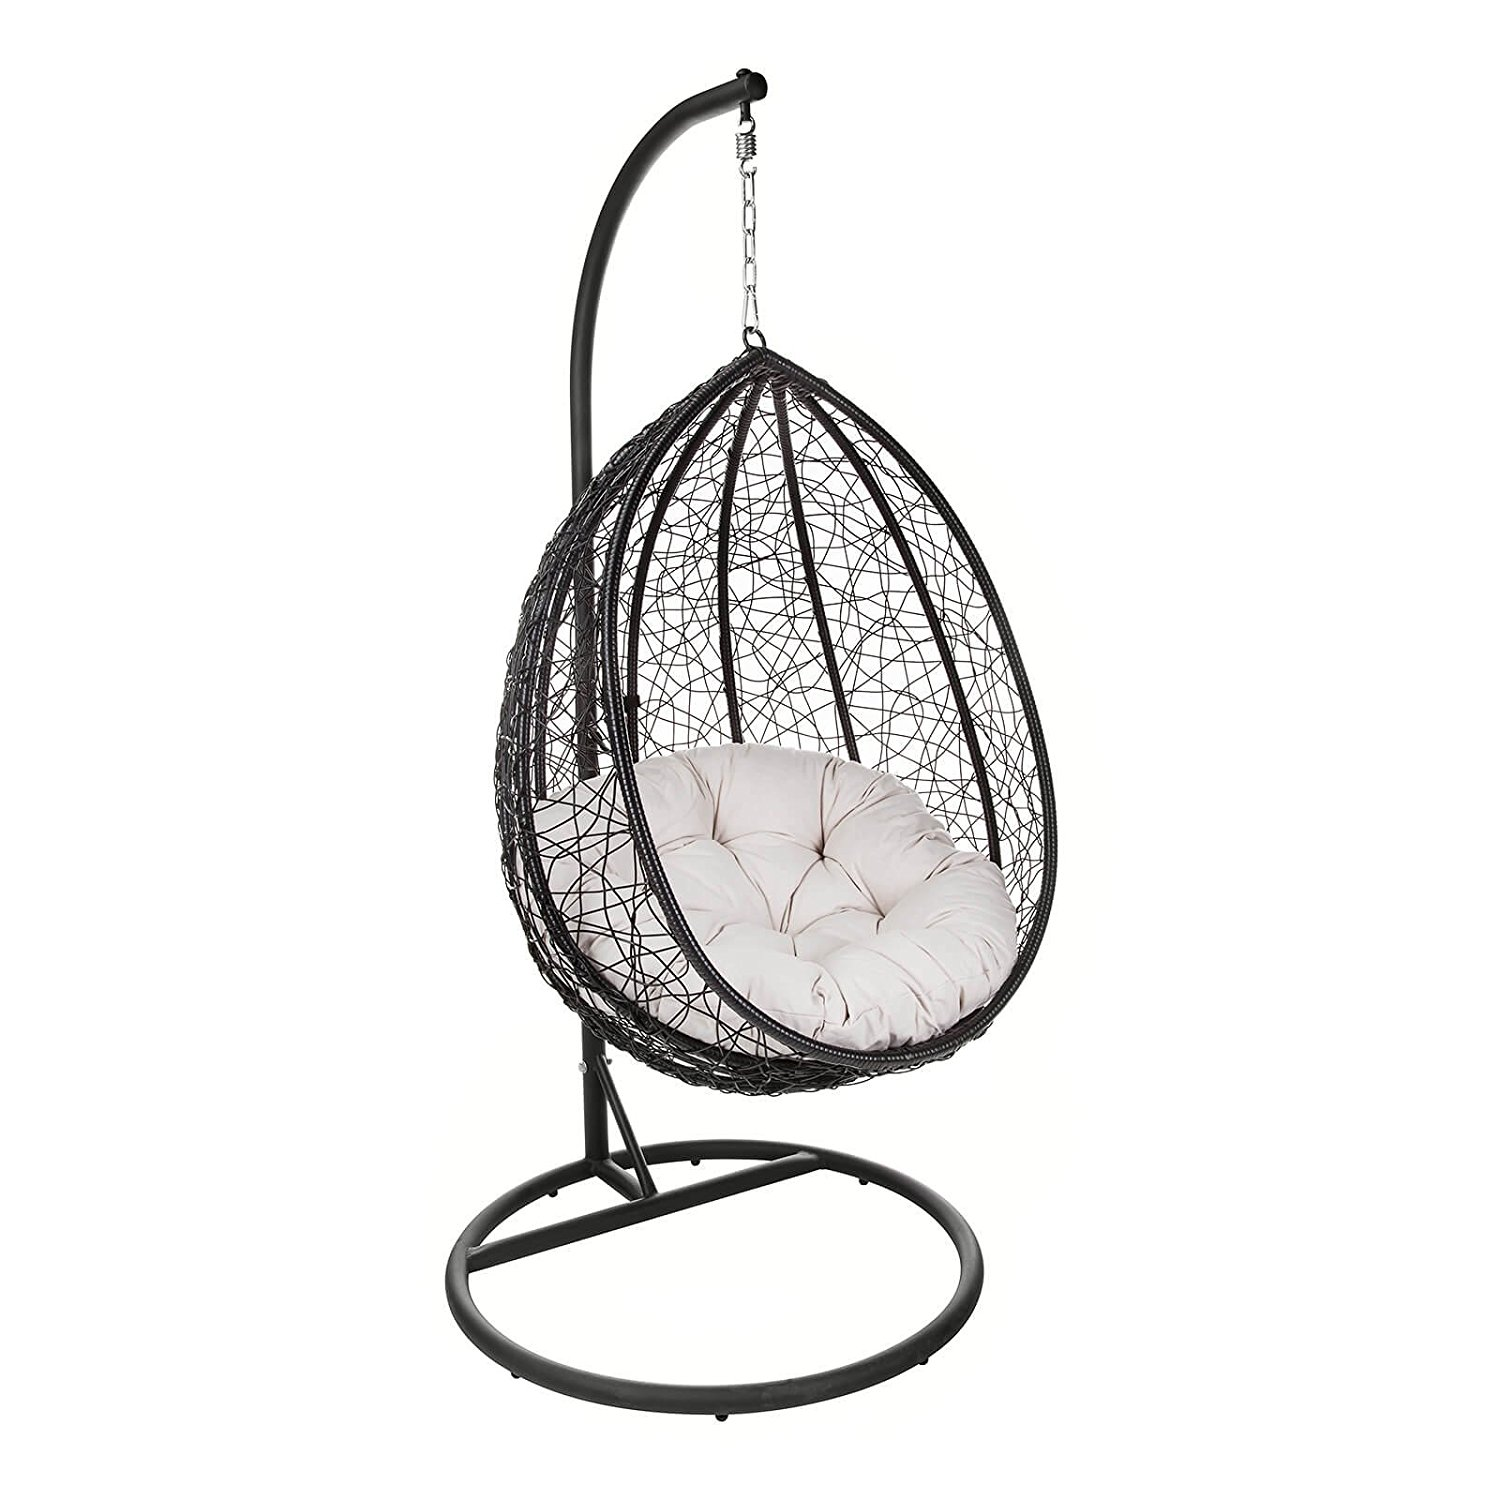 Outdoor Patio Hanging Chair Indoor Egg Swing Chair With Stand Buy Leisure And Patio Rattan Porch Furniture Chair Modern Garden And Indoor